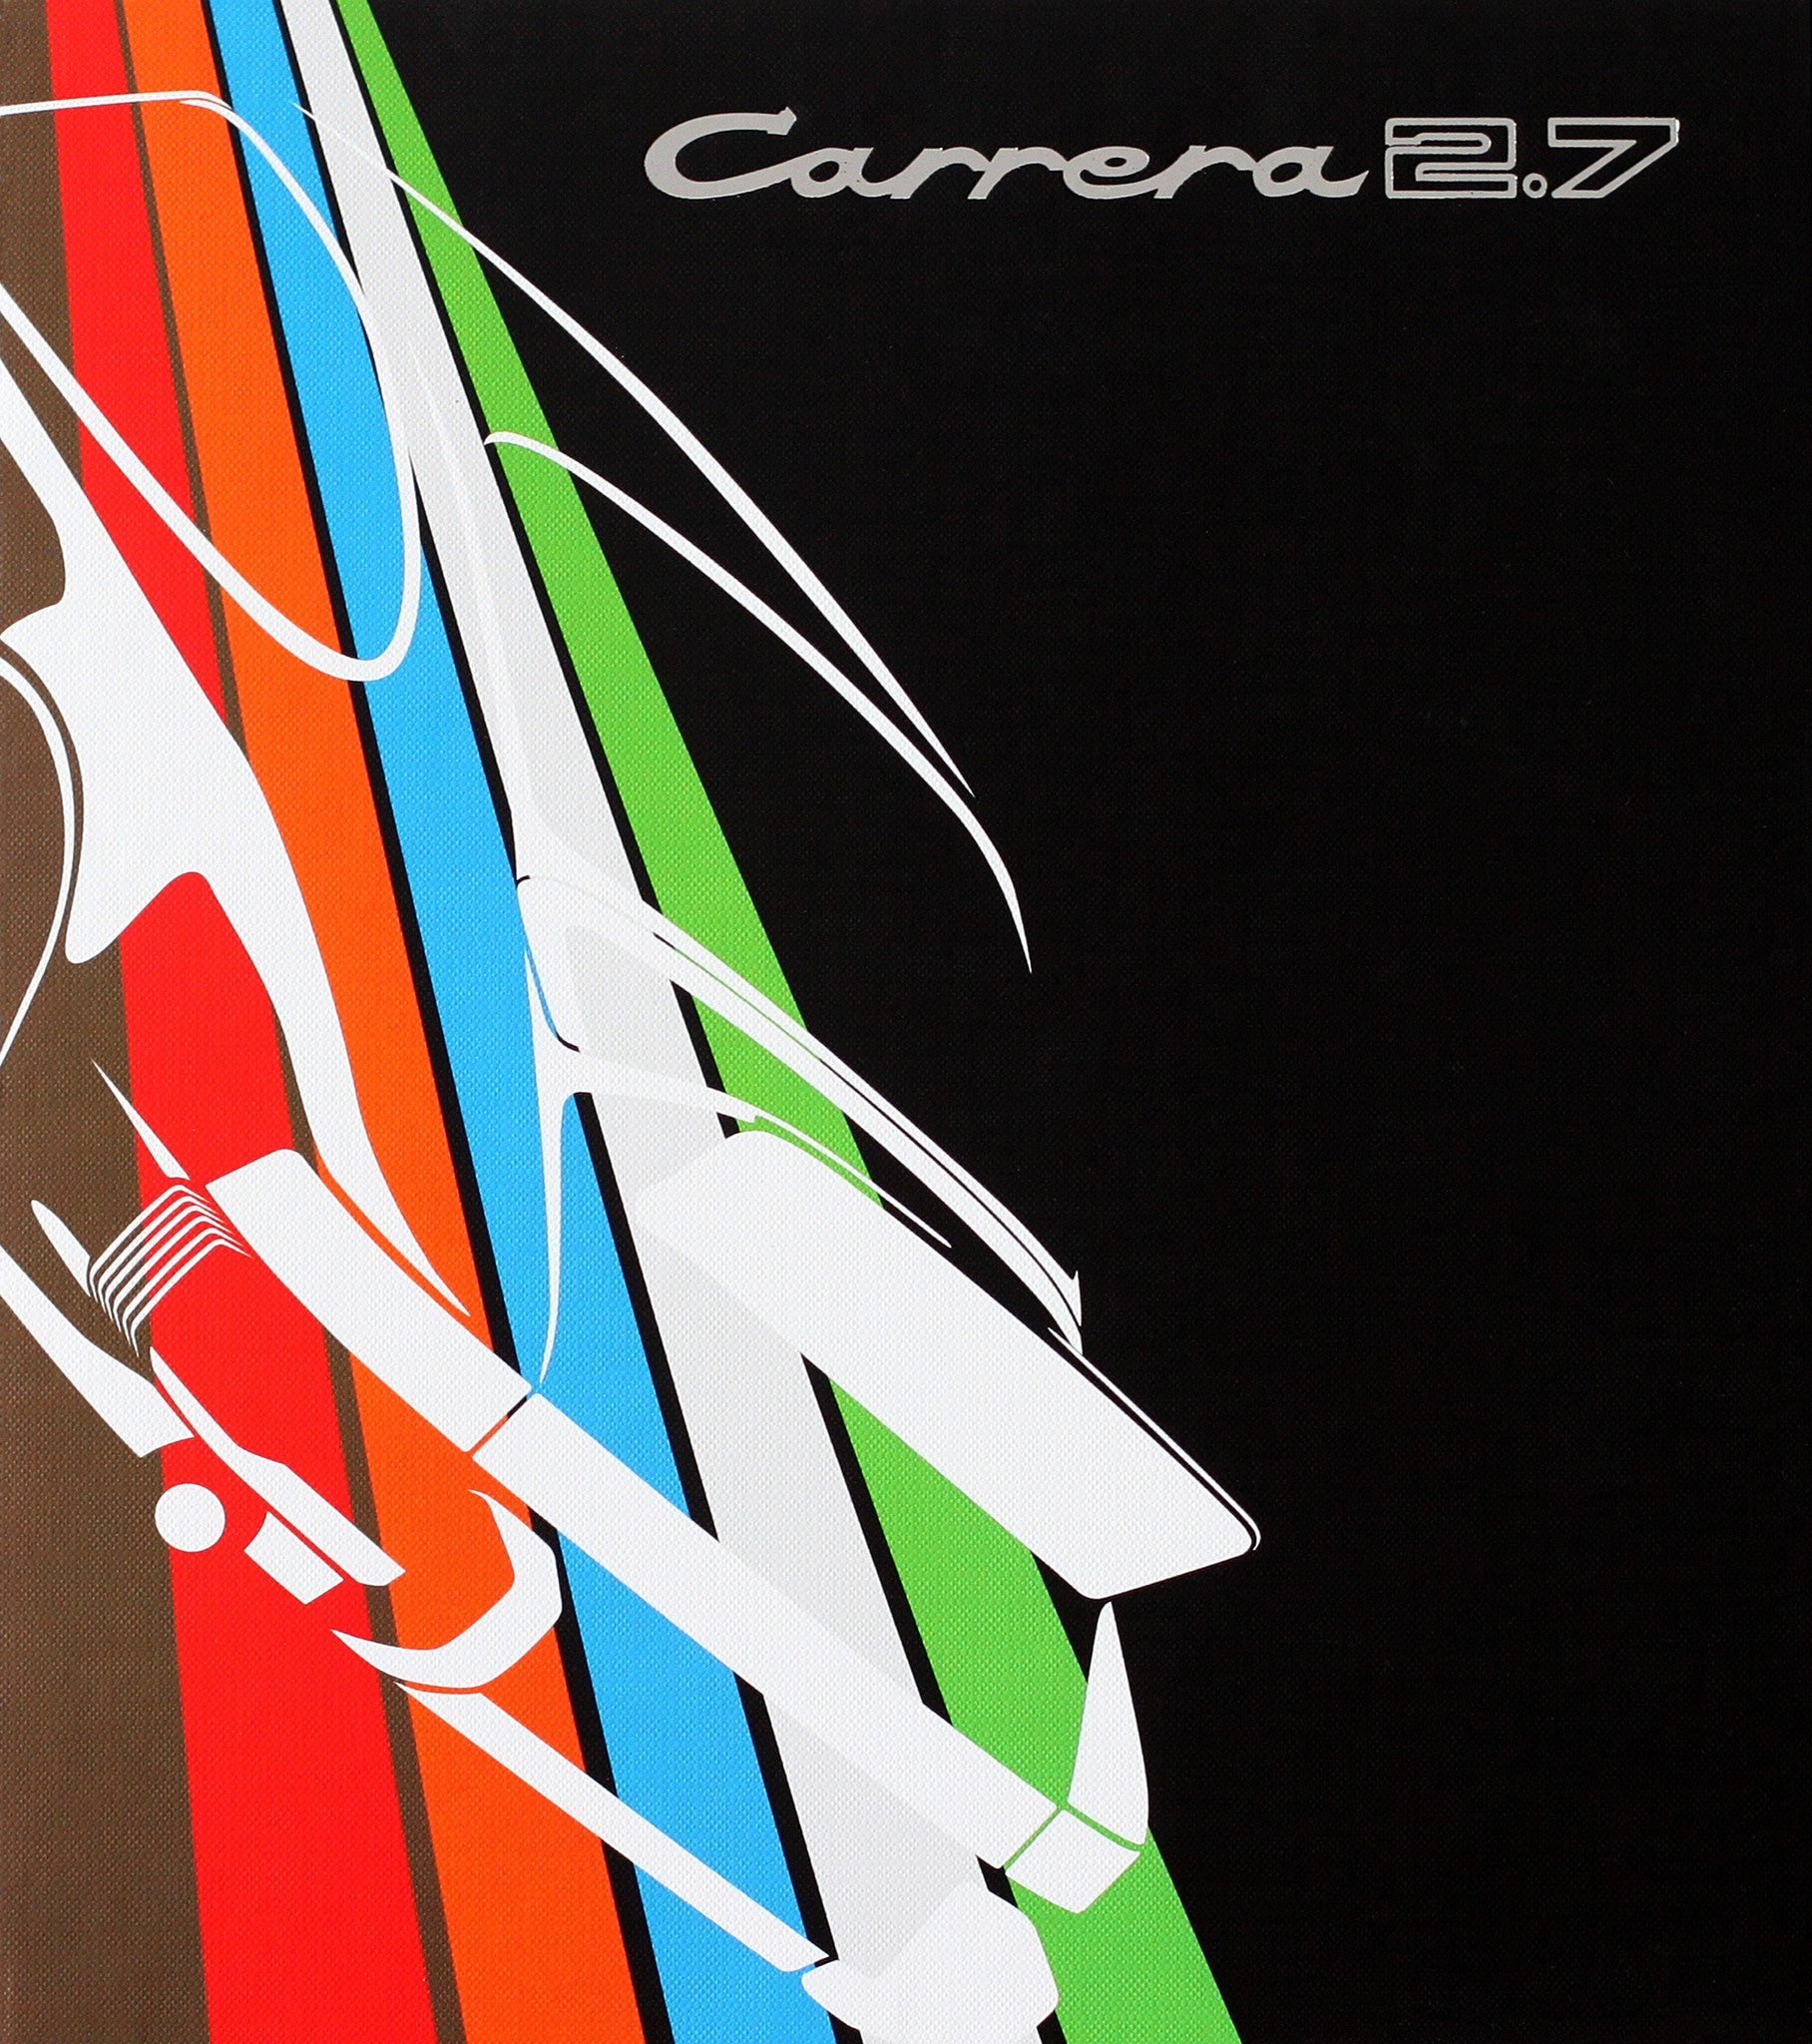 Carrera 2.7 (Limited Edition) Book Cover